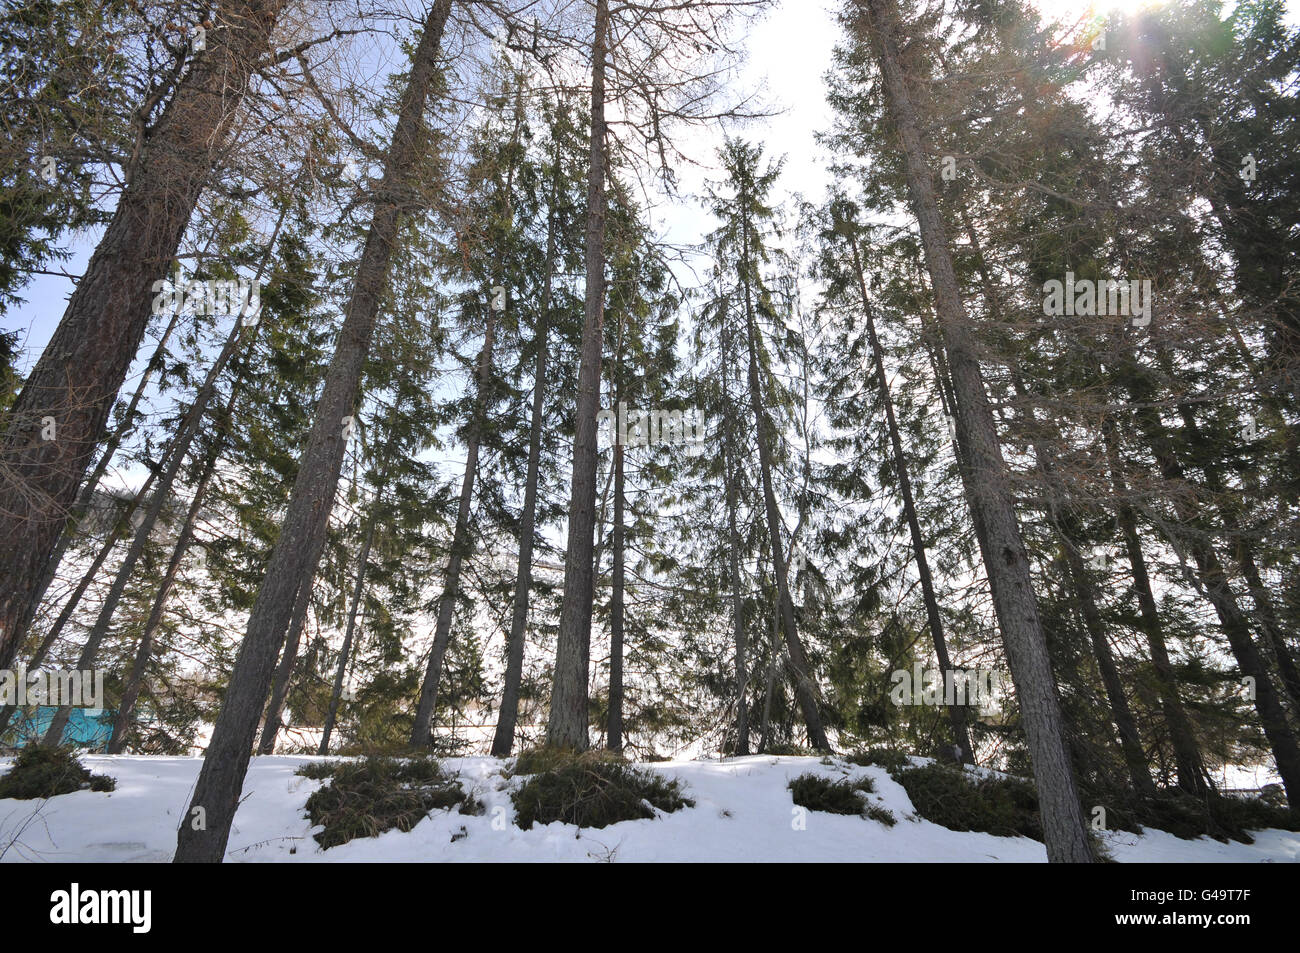 Tall conifer trees in High Tatras. - Stock Image